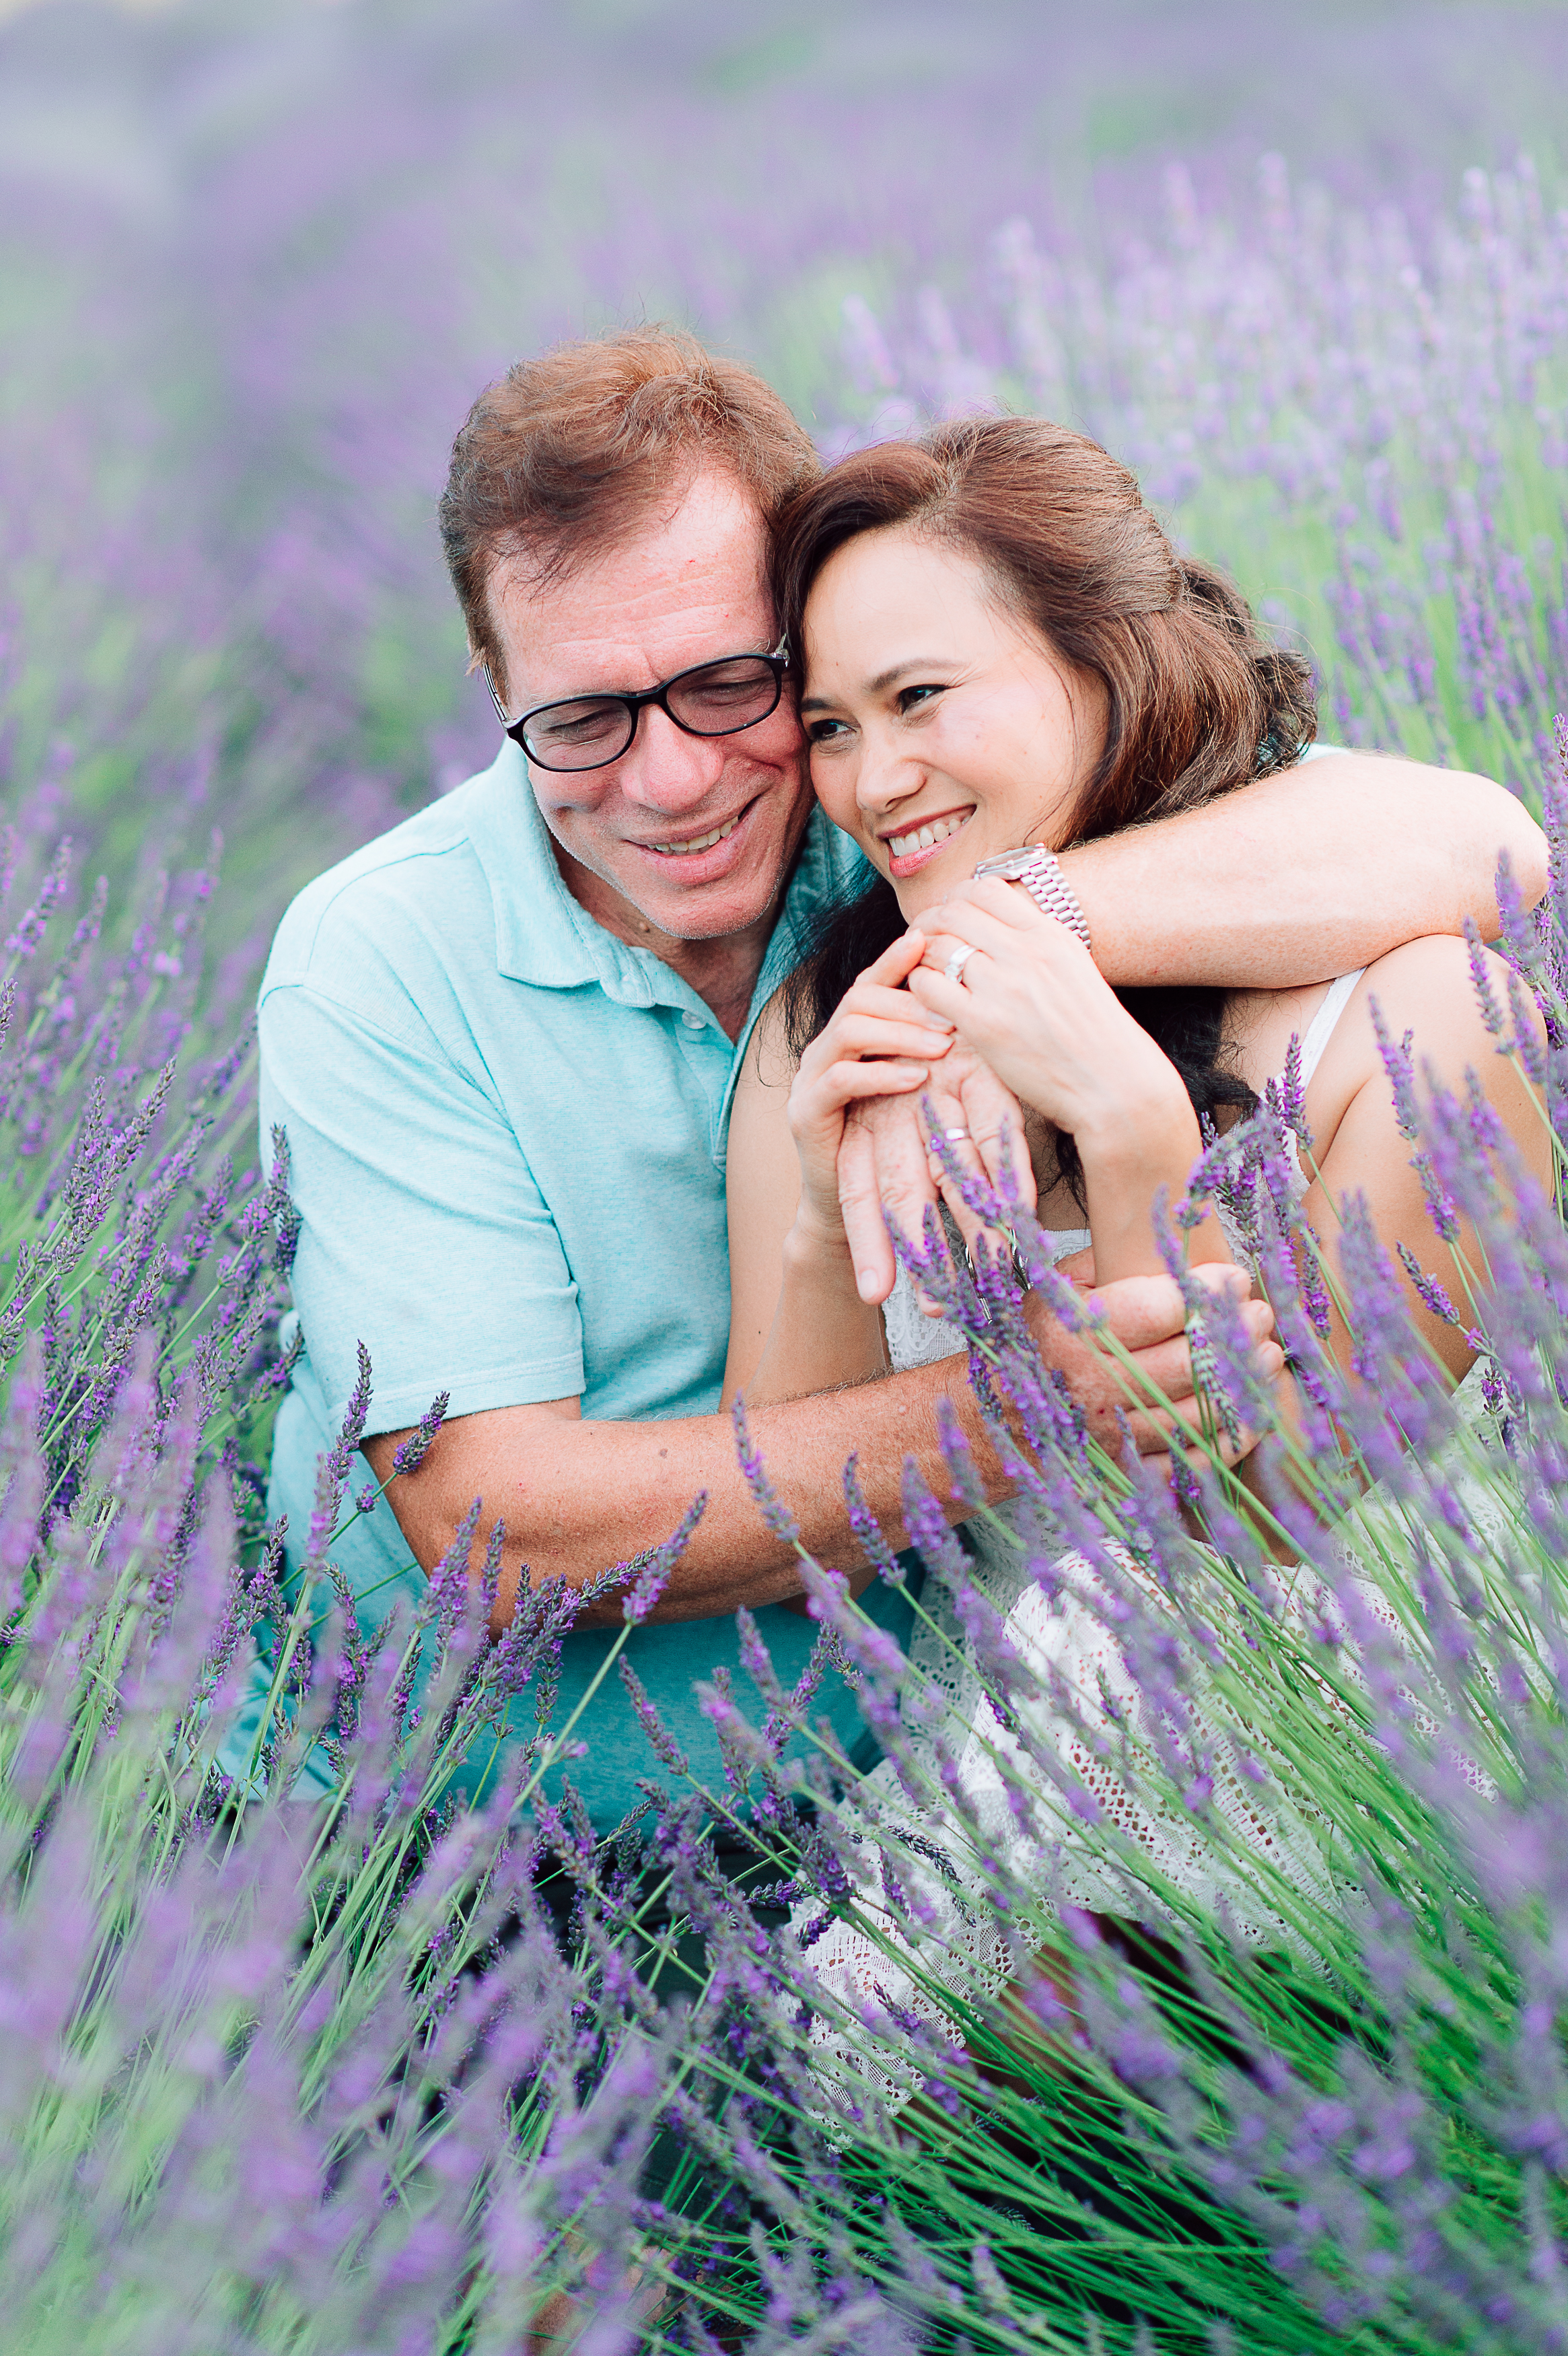 engagement_lavenderfield_youseephotography_LidiaOtto (25).jpg